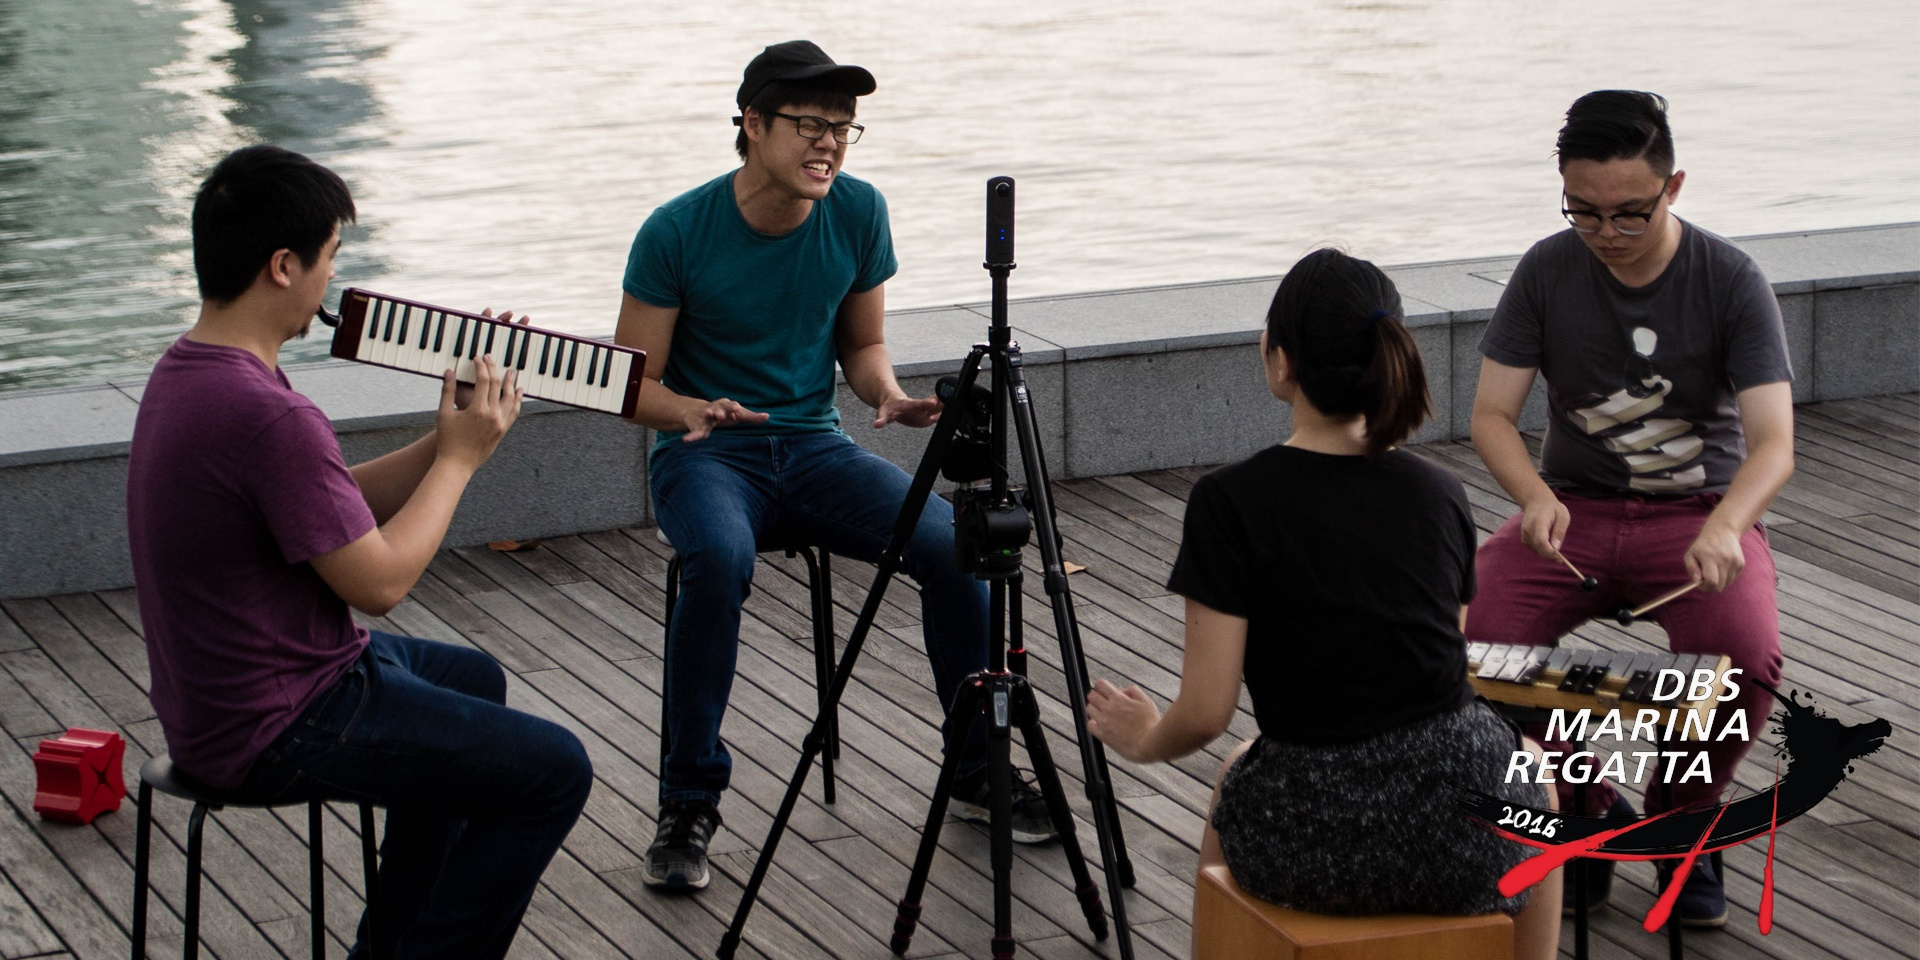 Singaporean artists lined up for DBS Marina Regatta perform songs in 360° videos